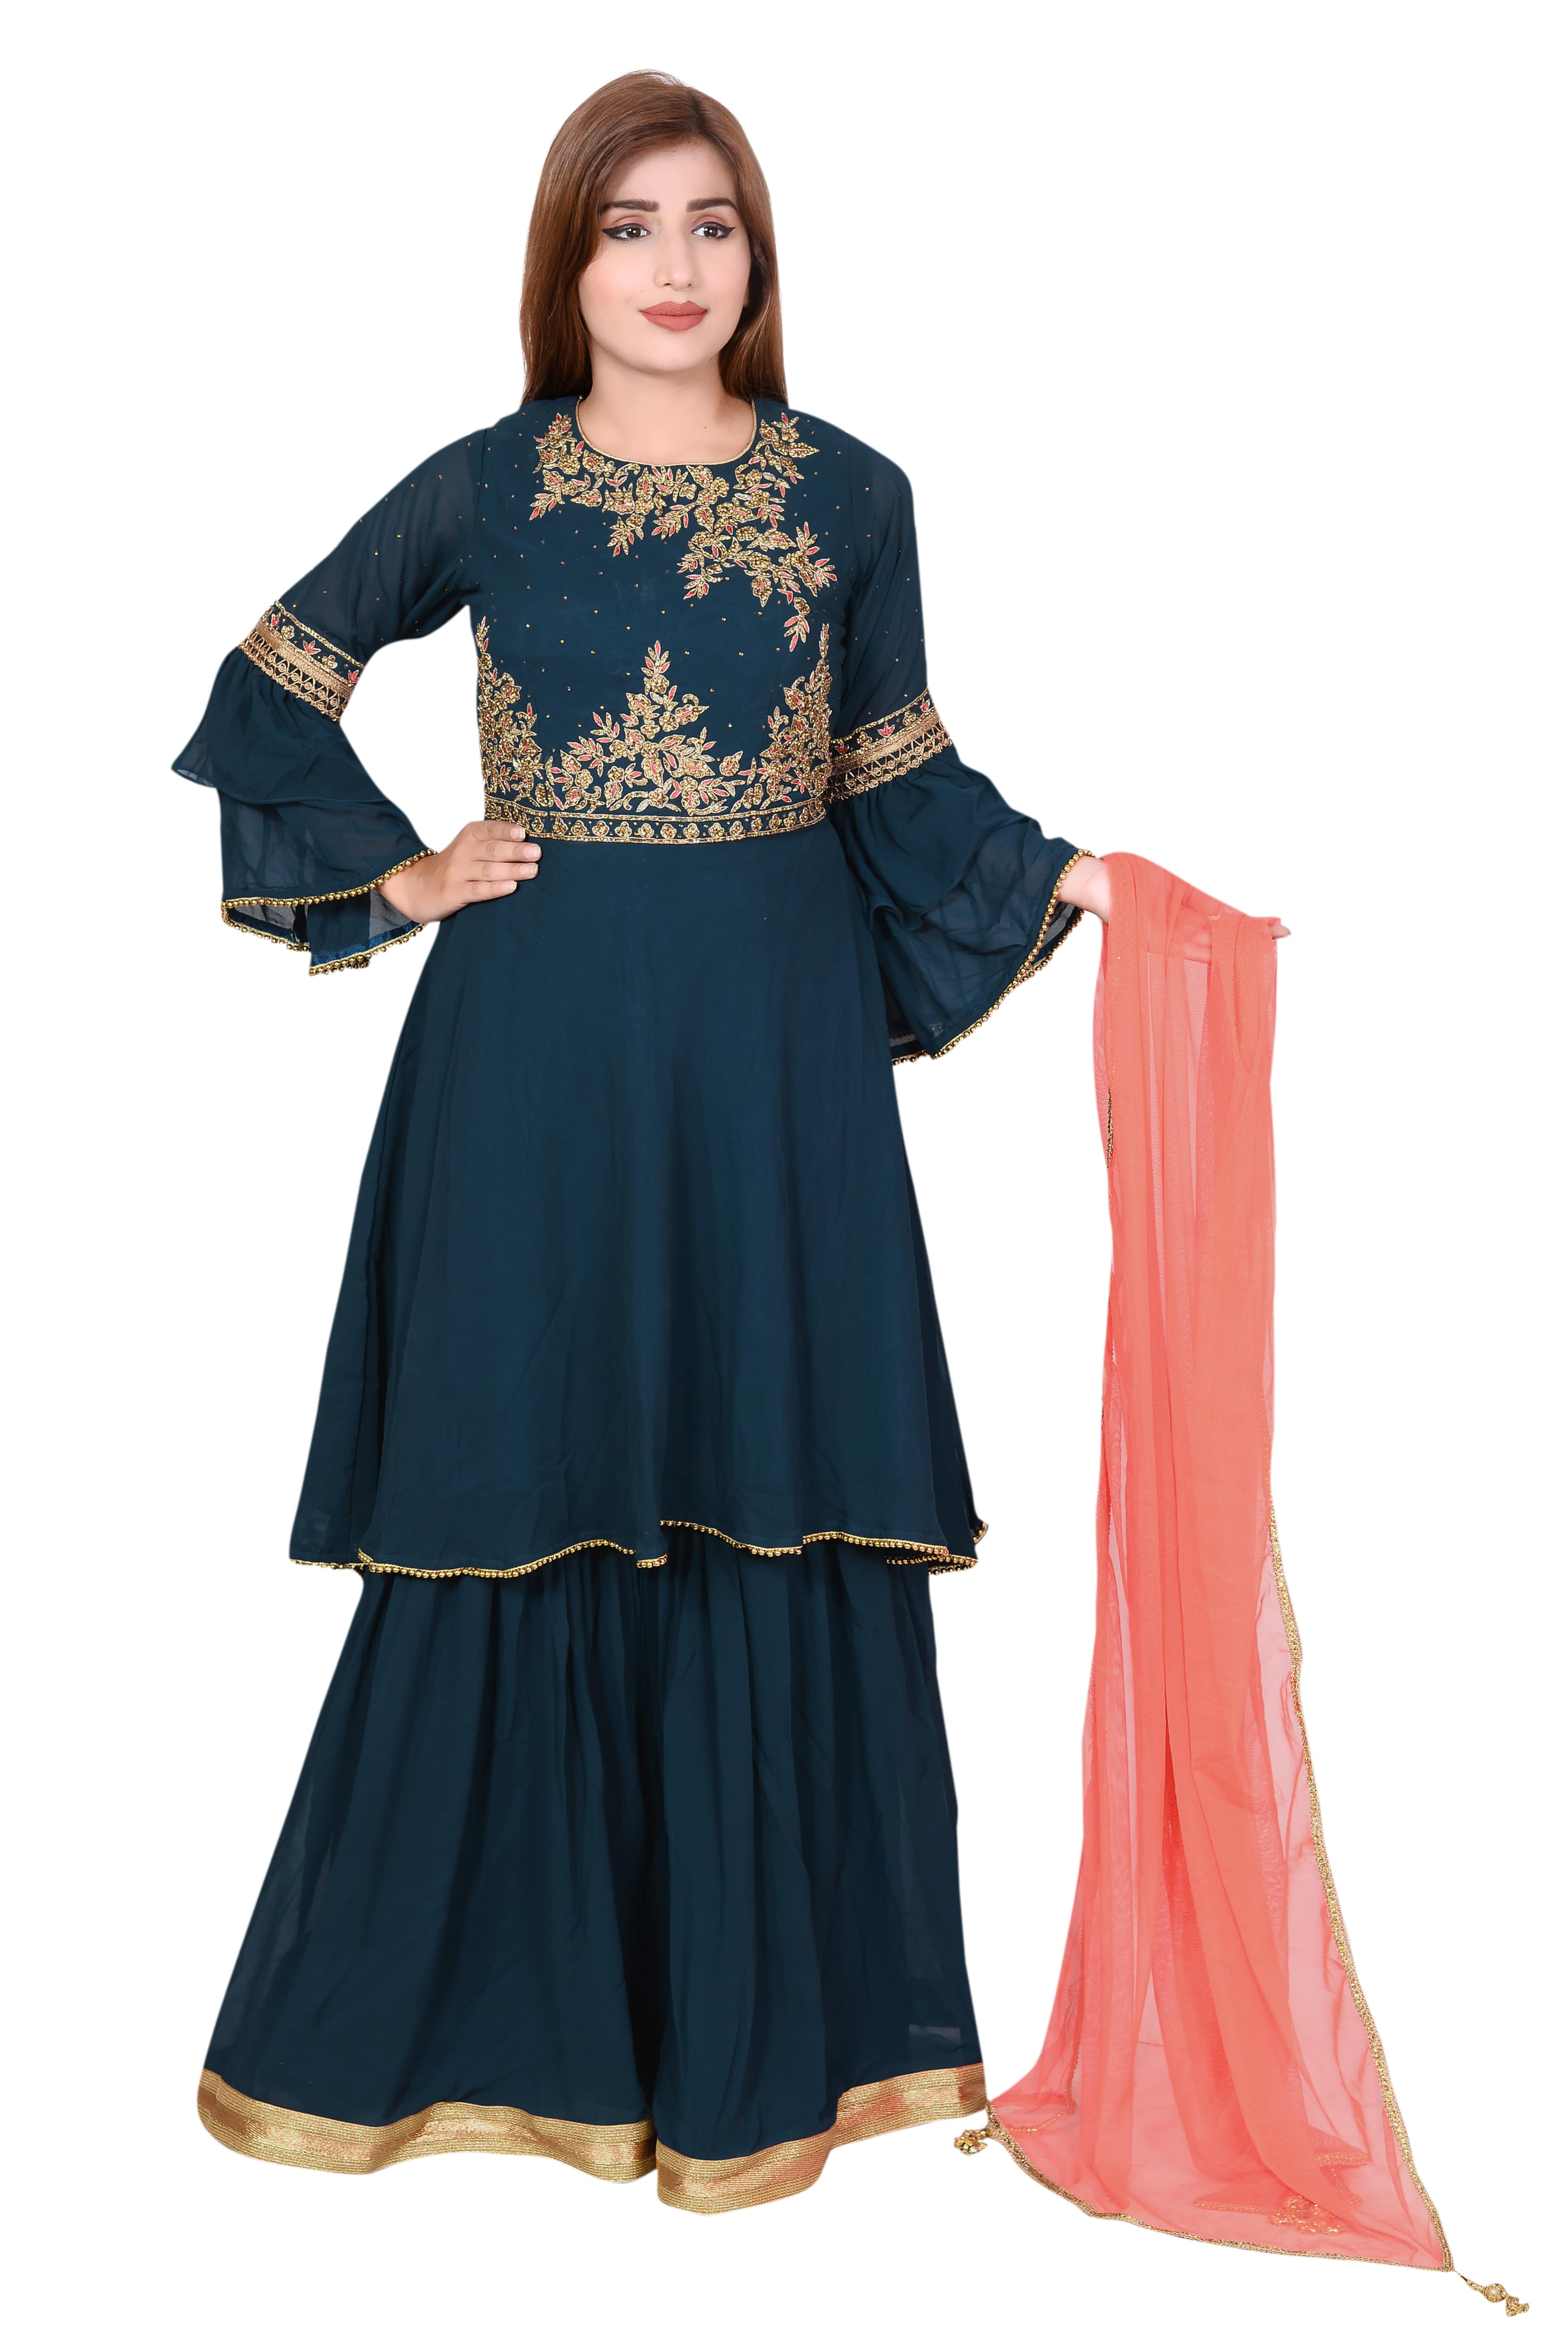 Ladies Ethnic Wear In Ujjain